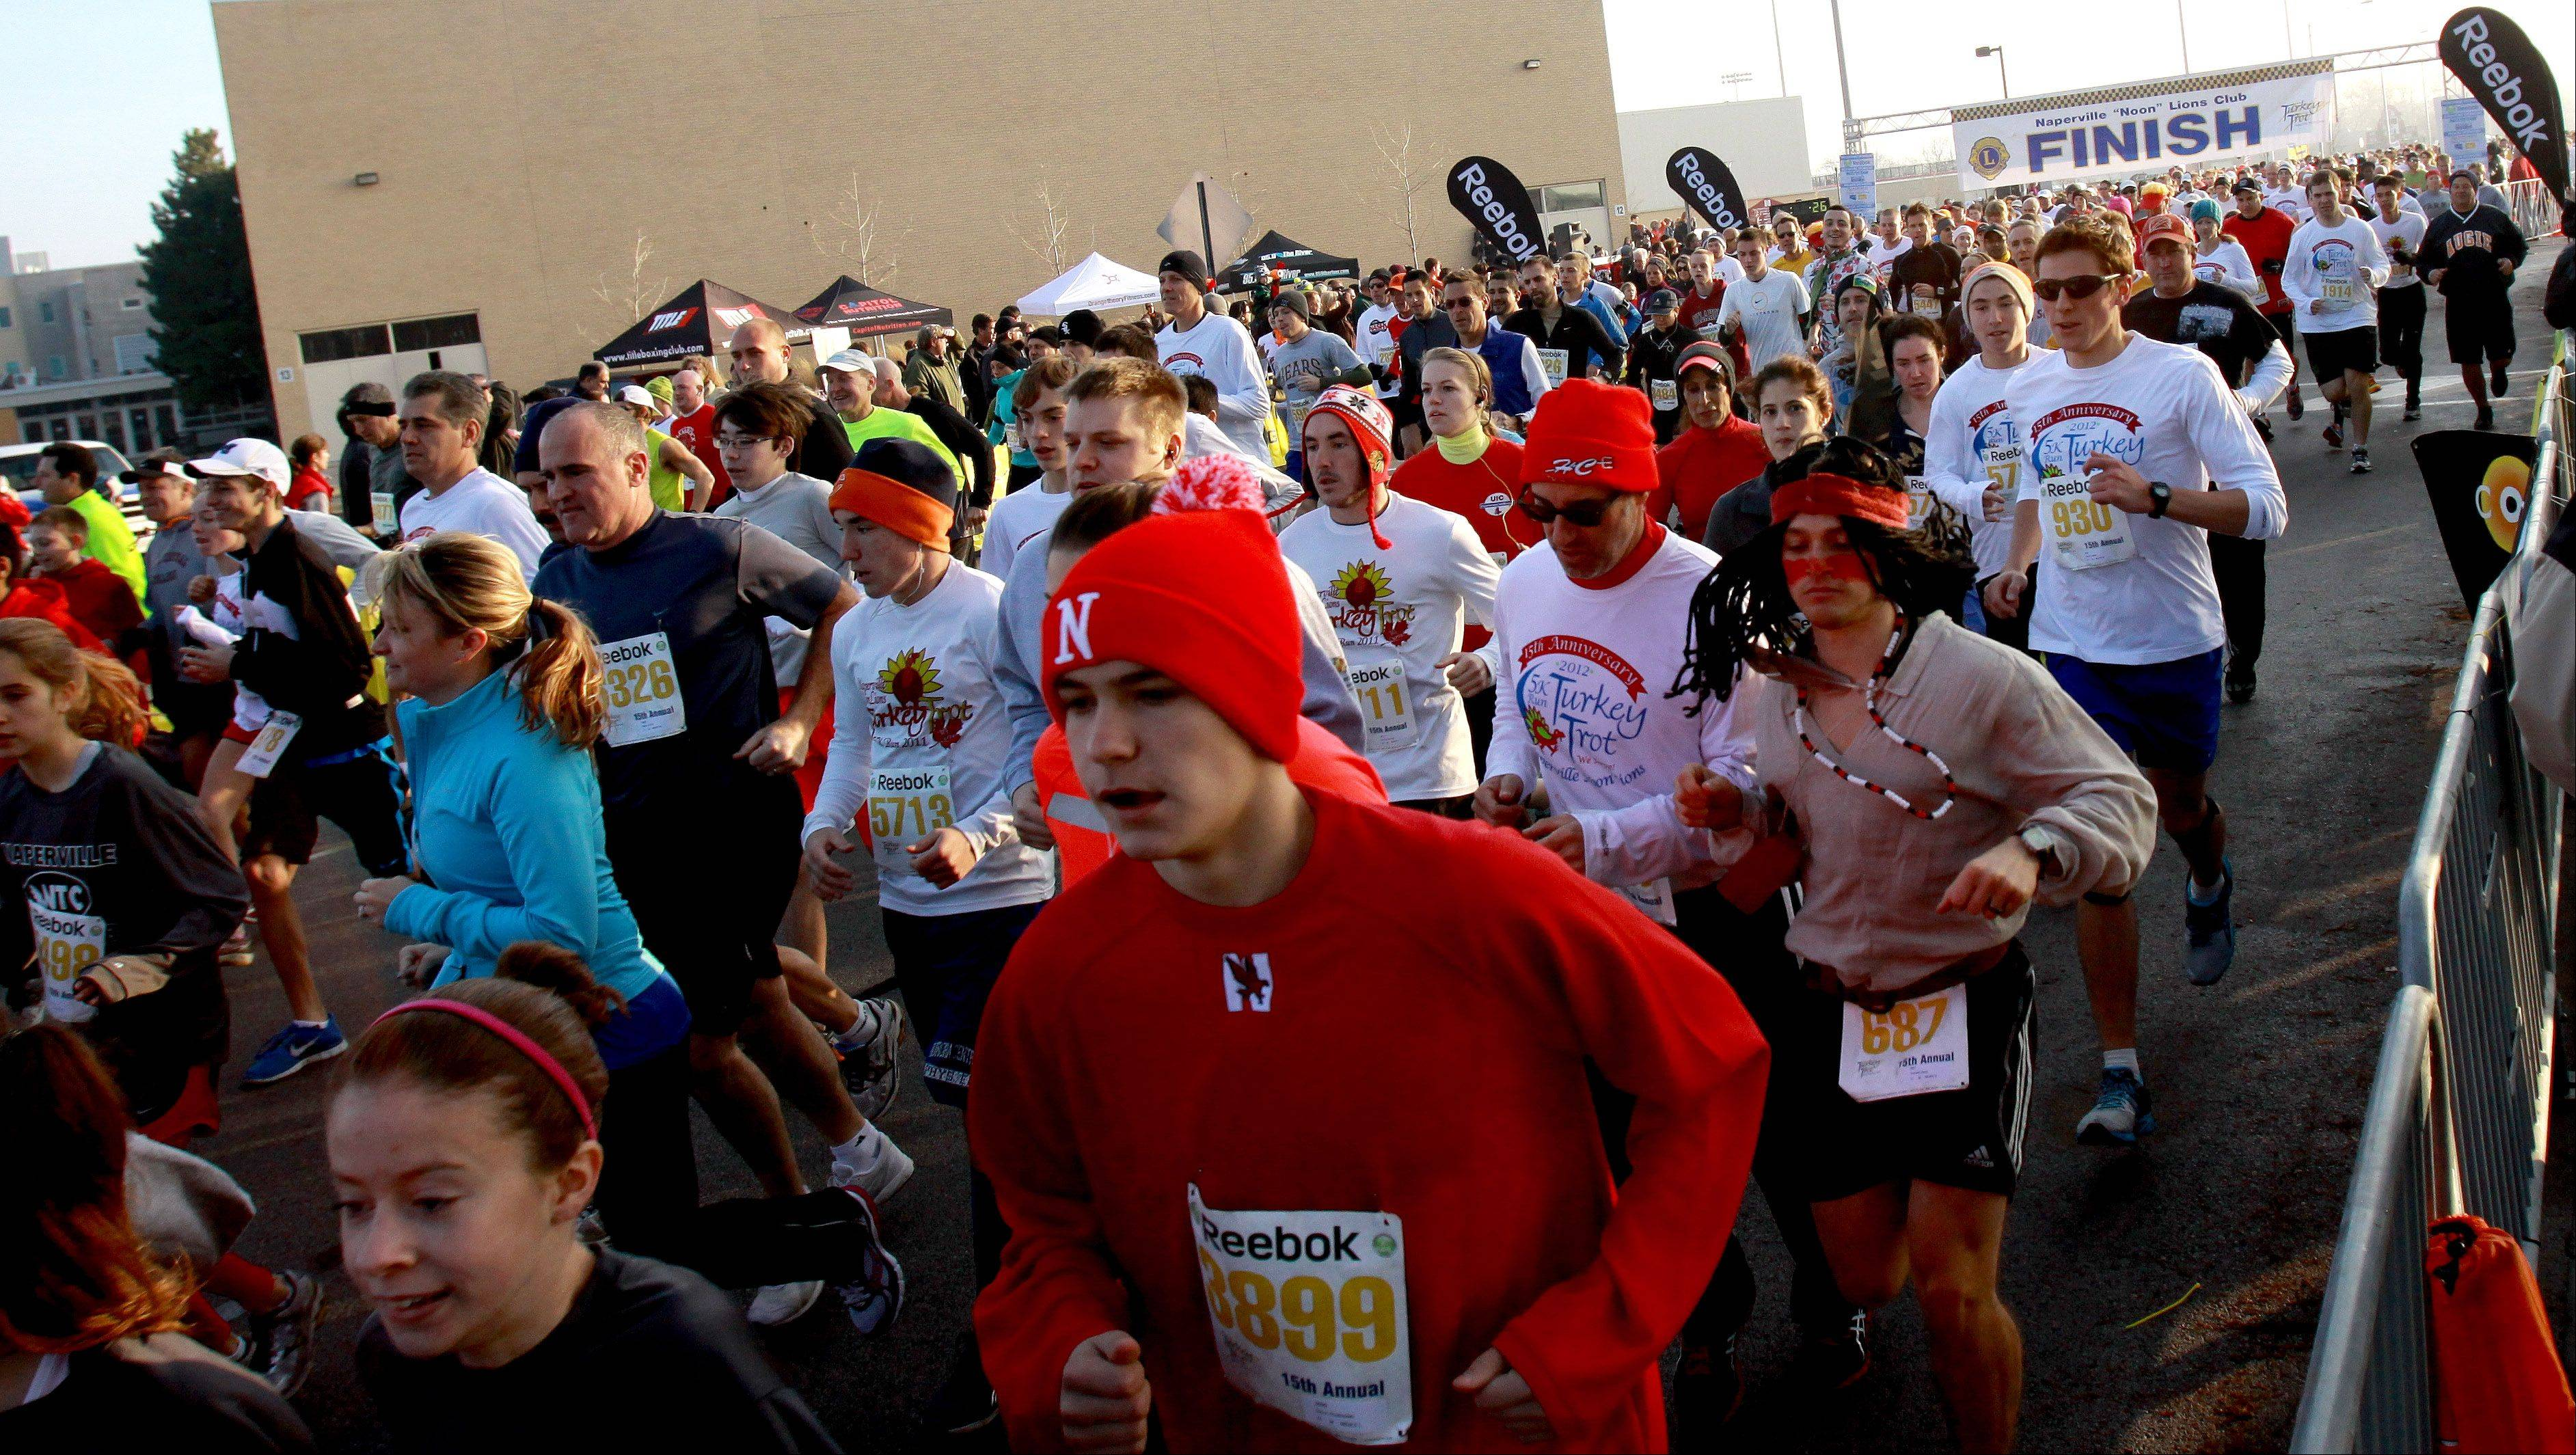 The Turkey Trot in Naperville draws thousands of runners, some dressing up, for the annual Thanksgiving 5K run.